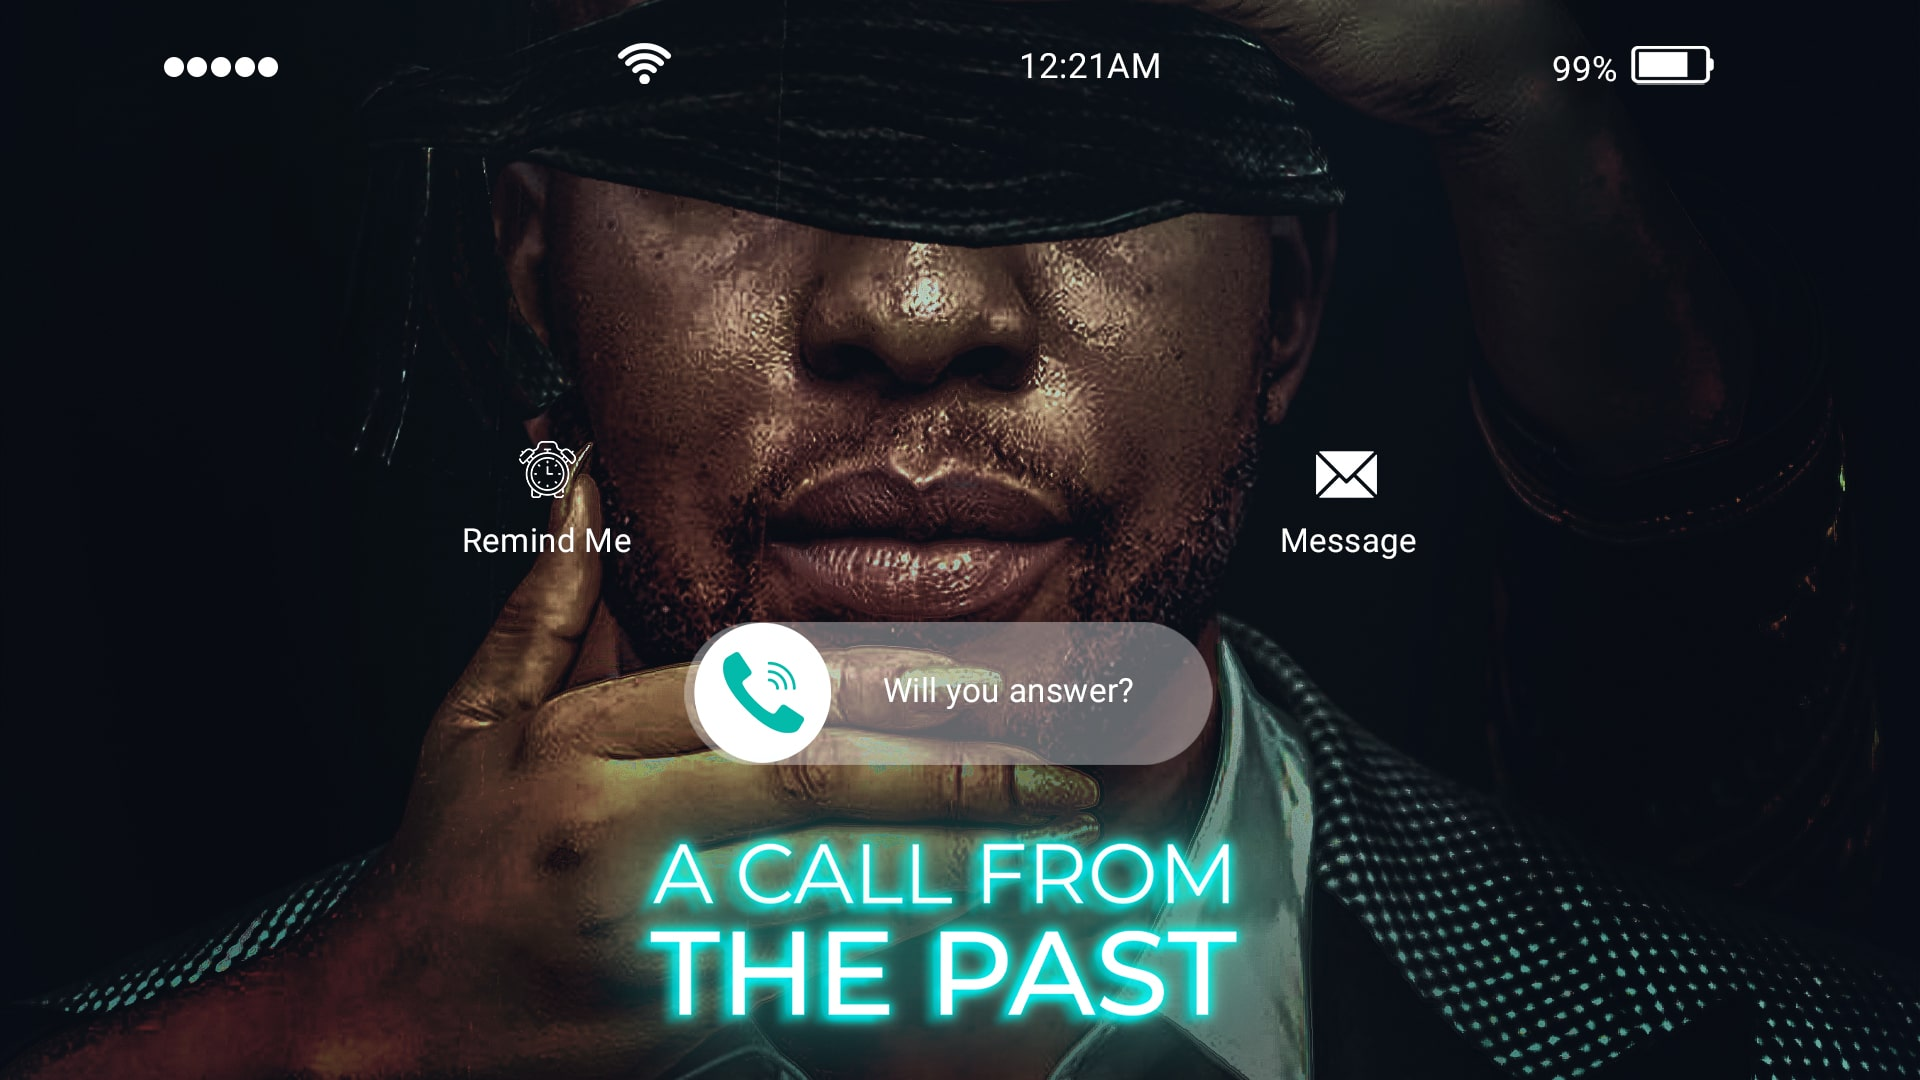 A CALL FROM THE PAST